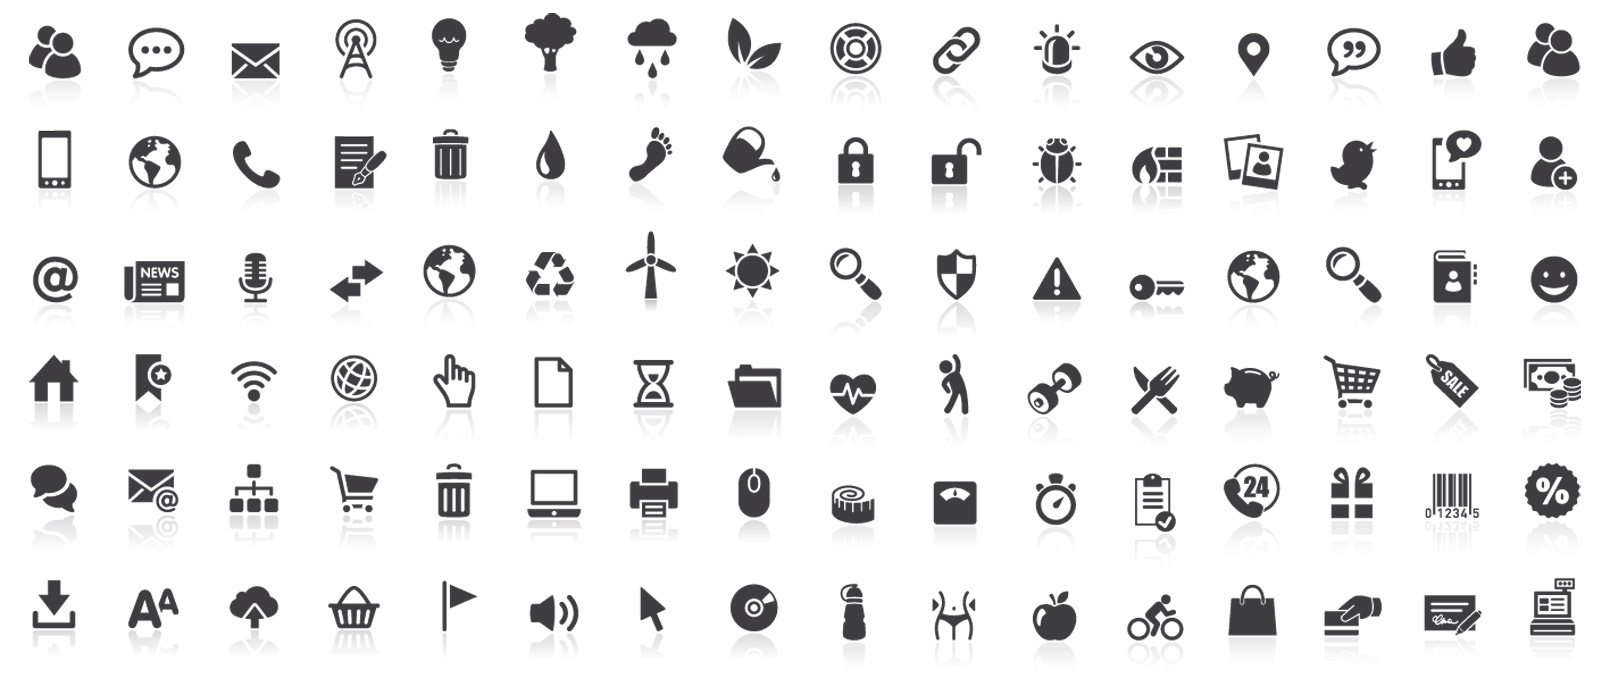 Stock Illustration Icons